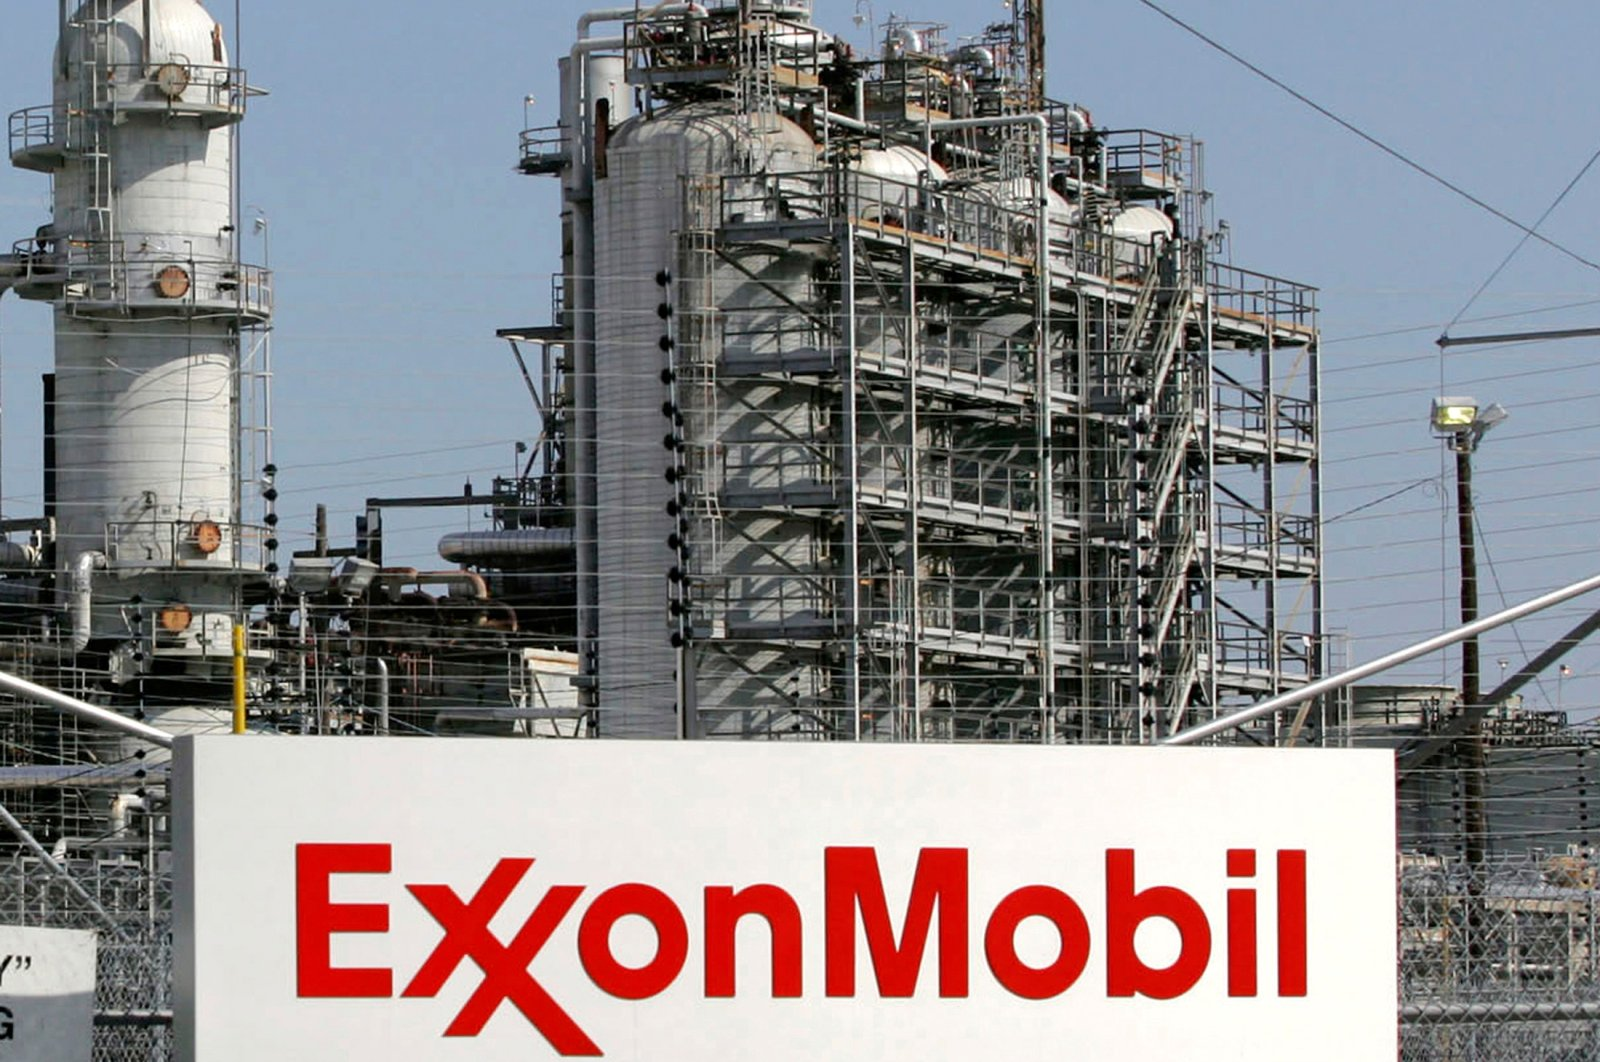 A view of the Exxon Mobil refinery in Baytown, Texas, U.S., Sept. 15, 2008. (Reuters Photo)